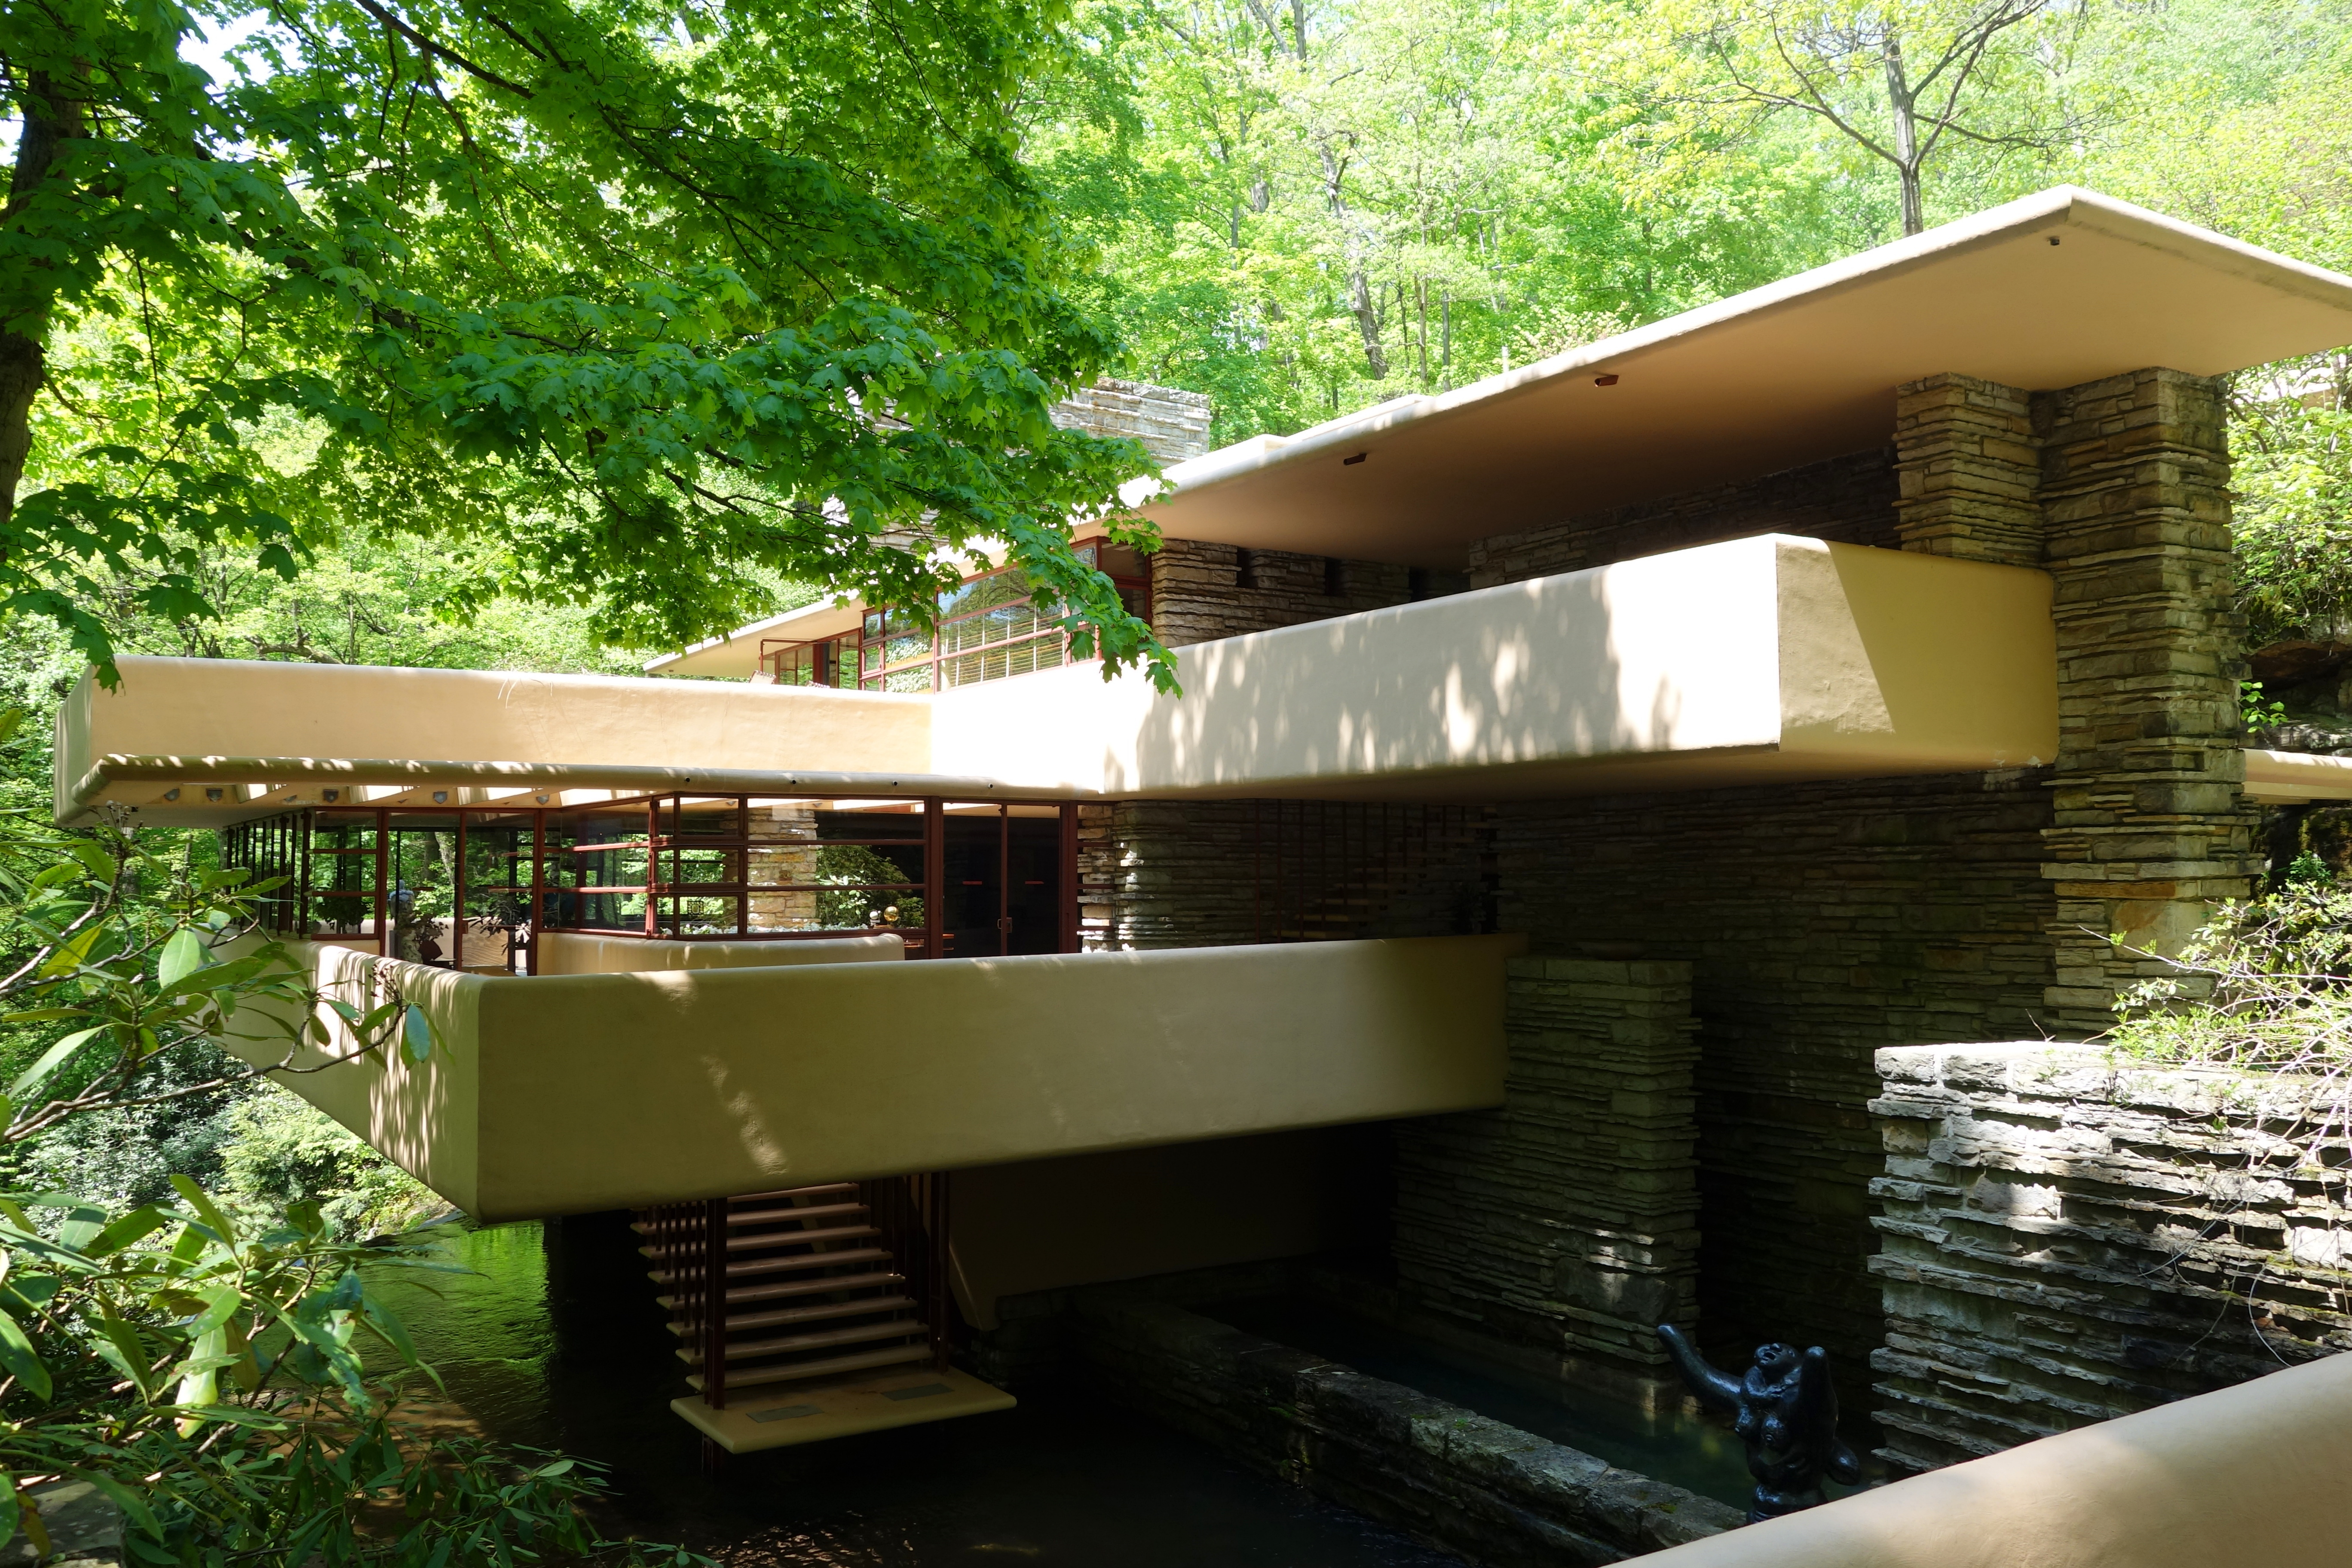 frank lloyd wright 39 s fallingwater explained architecture agenda phaidon. Black Bedroom Furniture Sets. Home Design Ideas